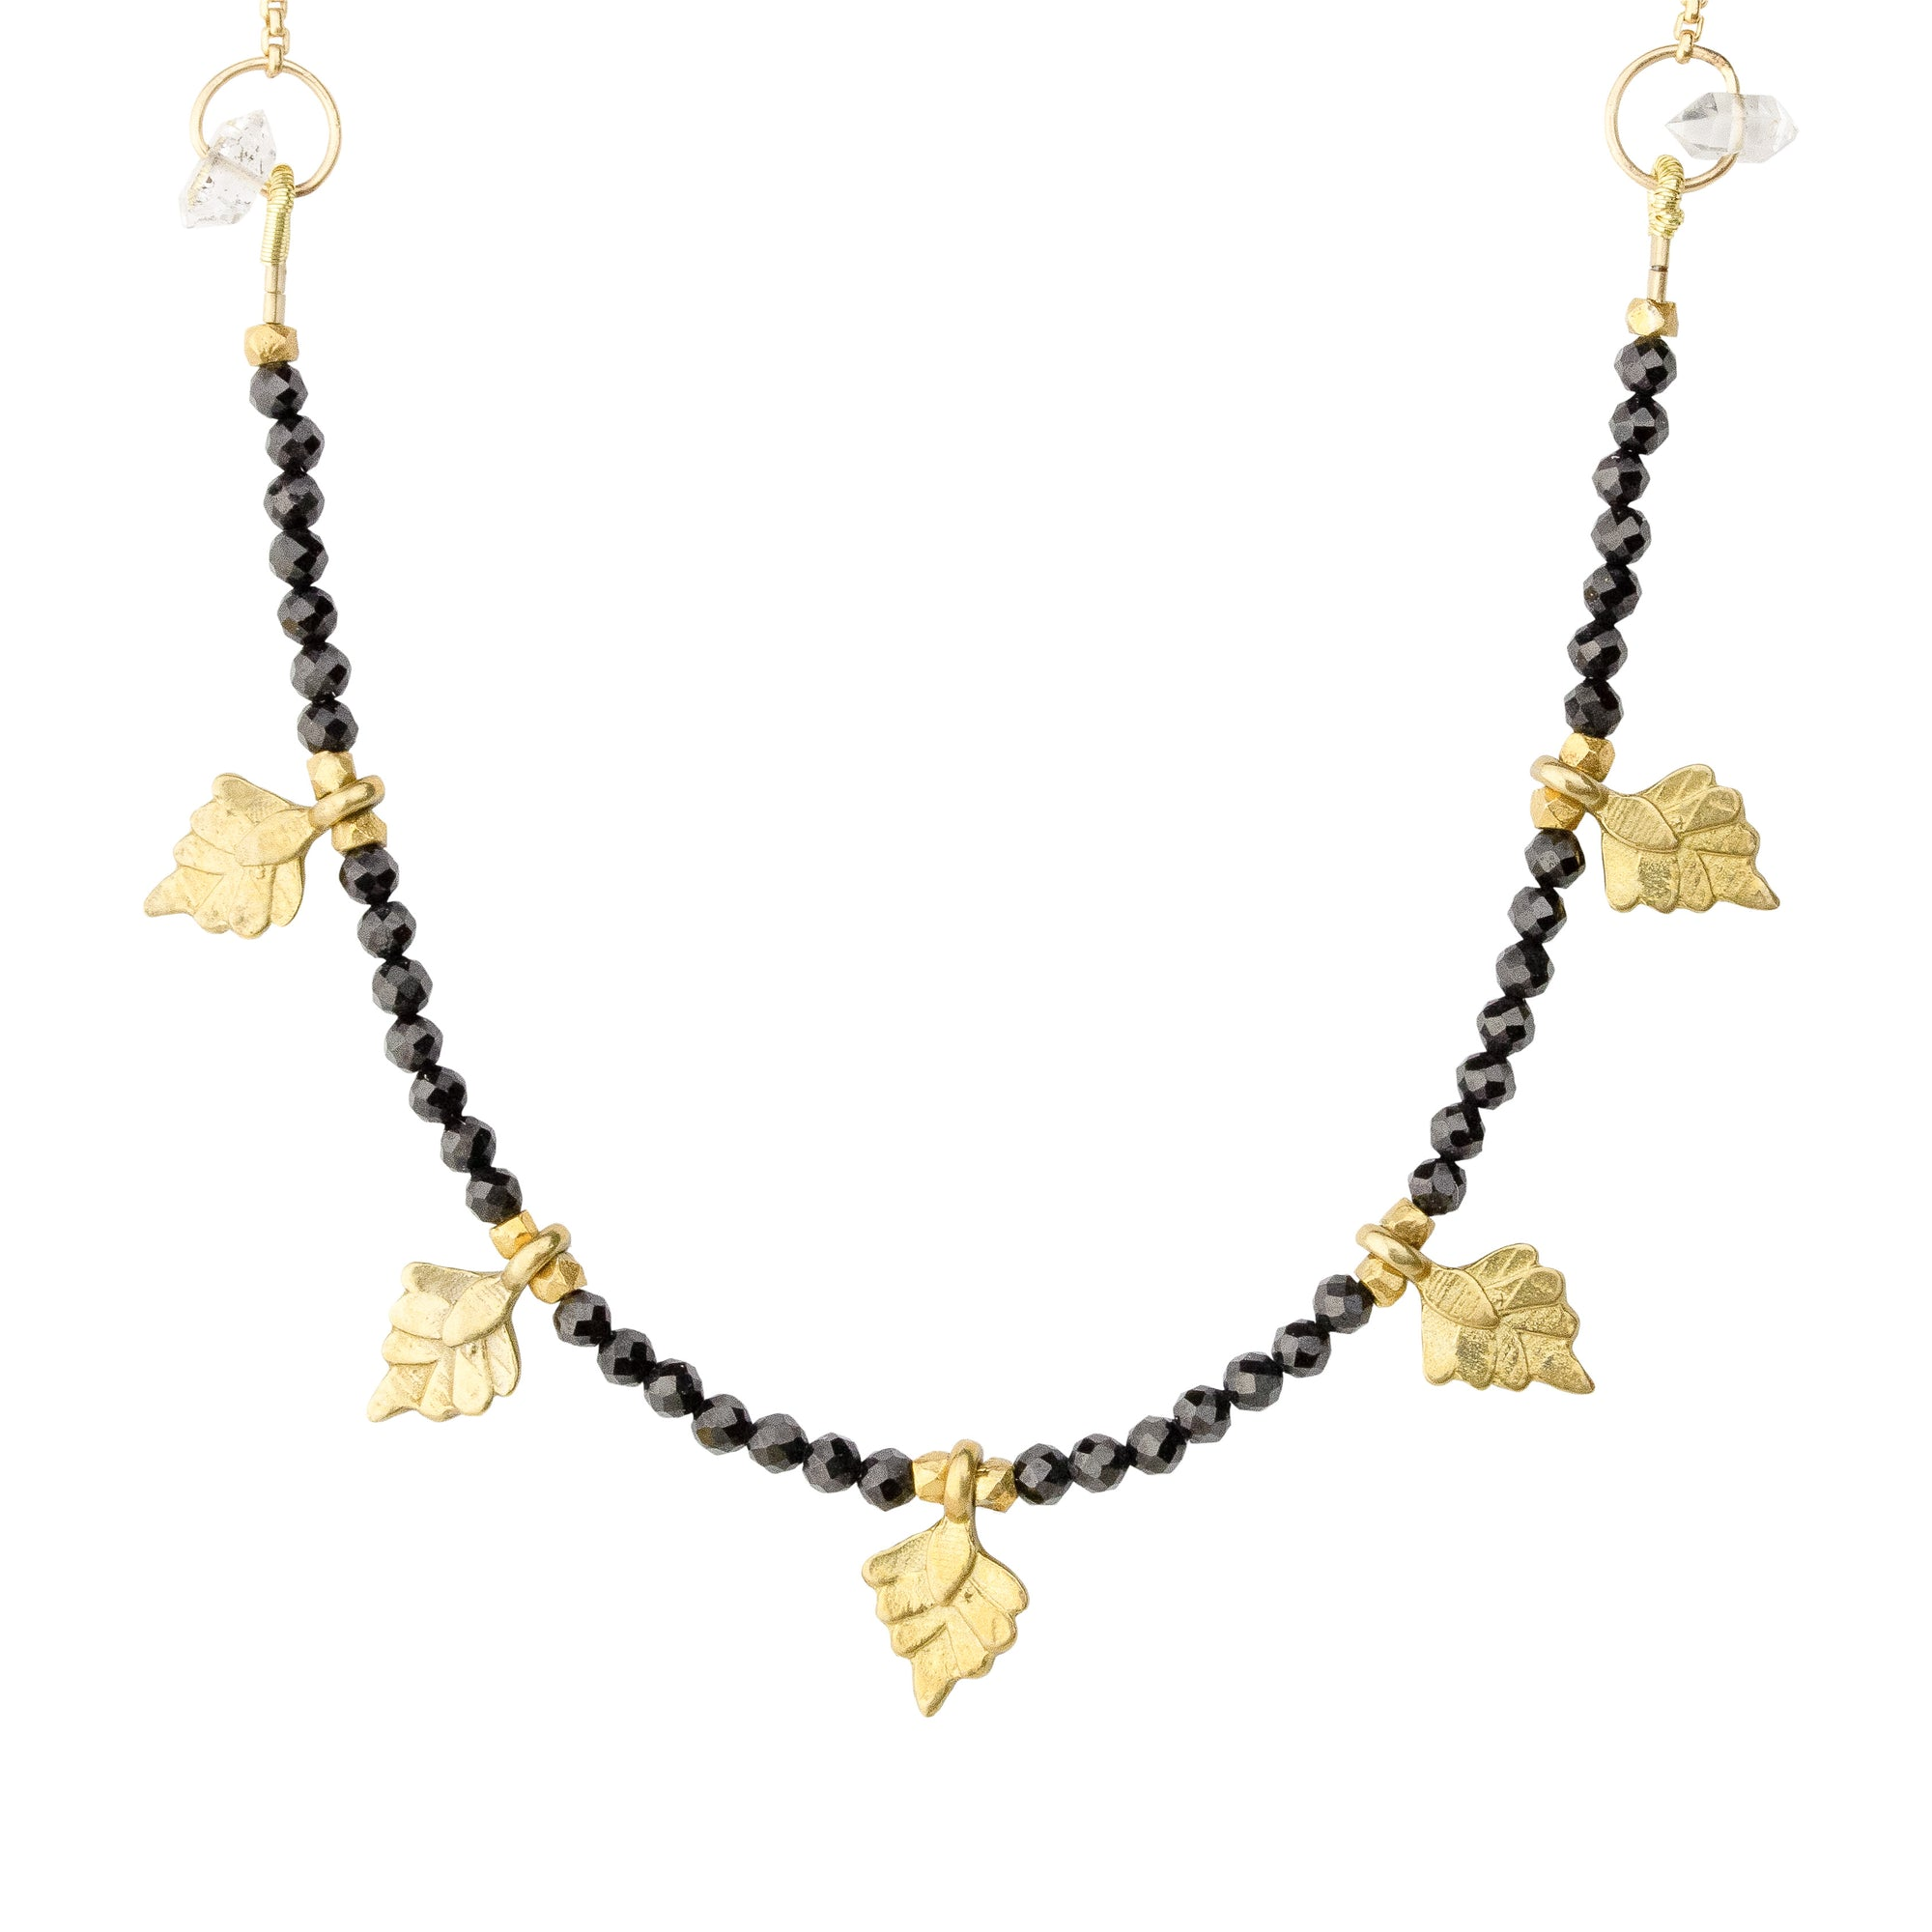 Nymph Black Spinel Necklace